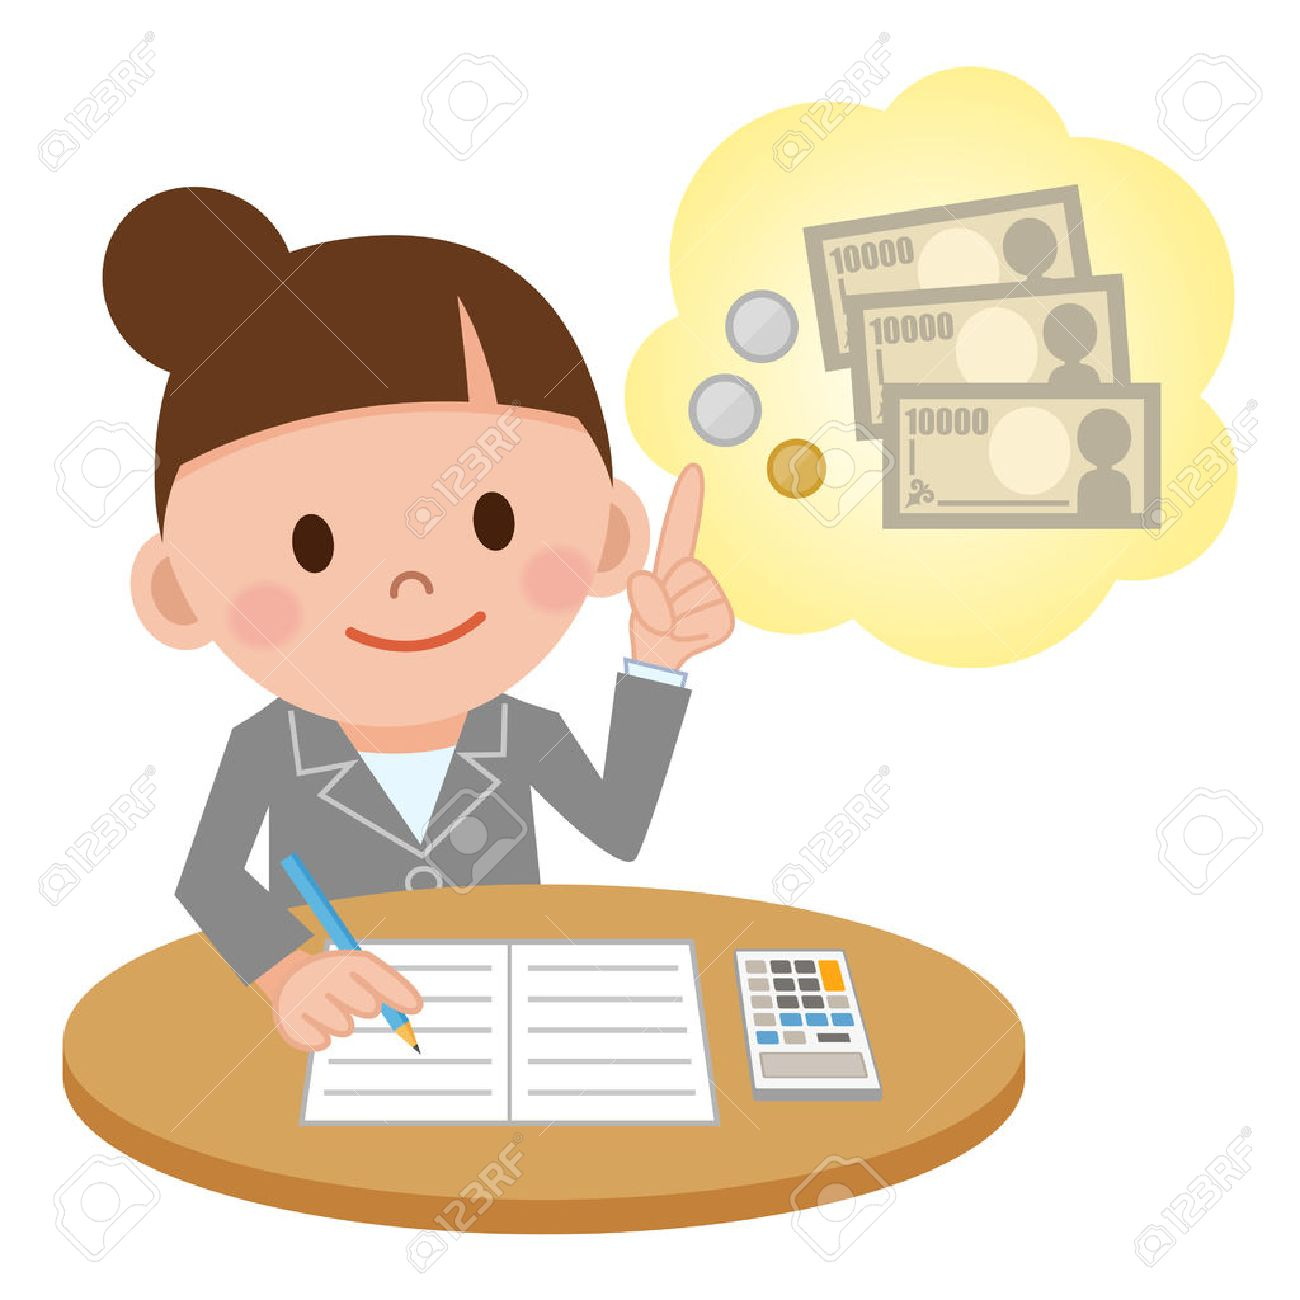 Illustration Featuring a Female Accountant Computing - 63386850